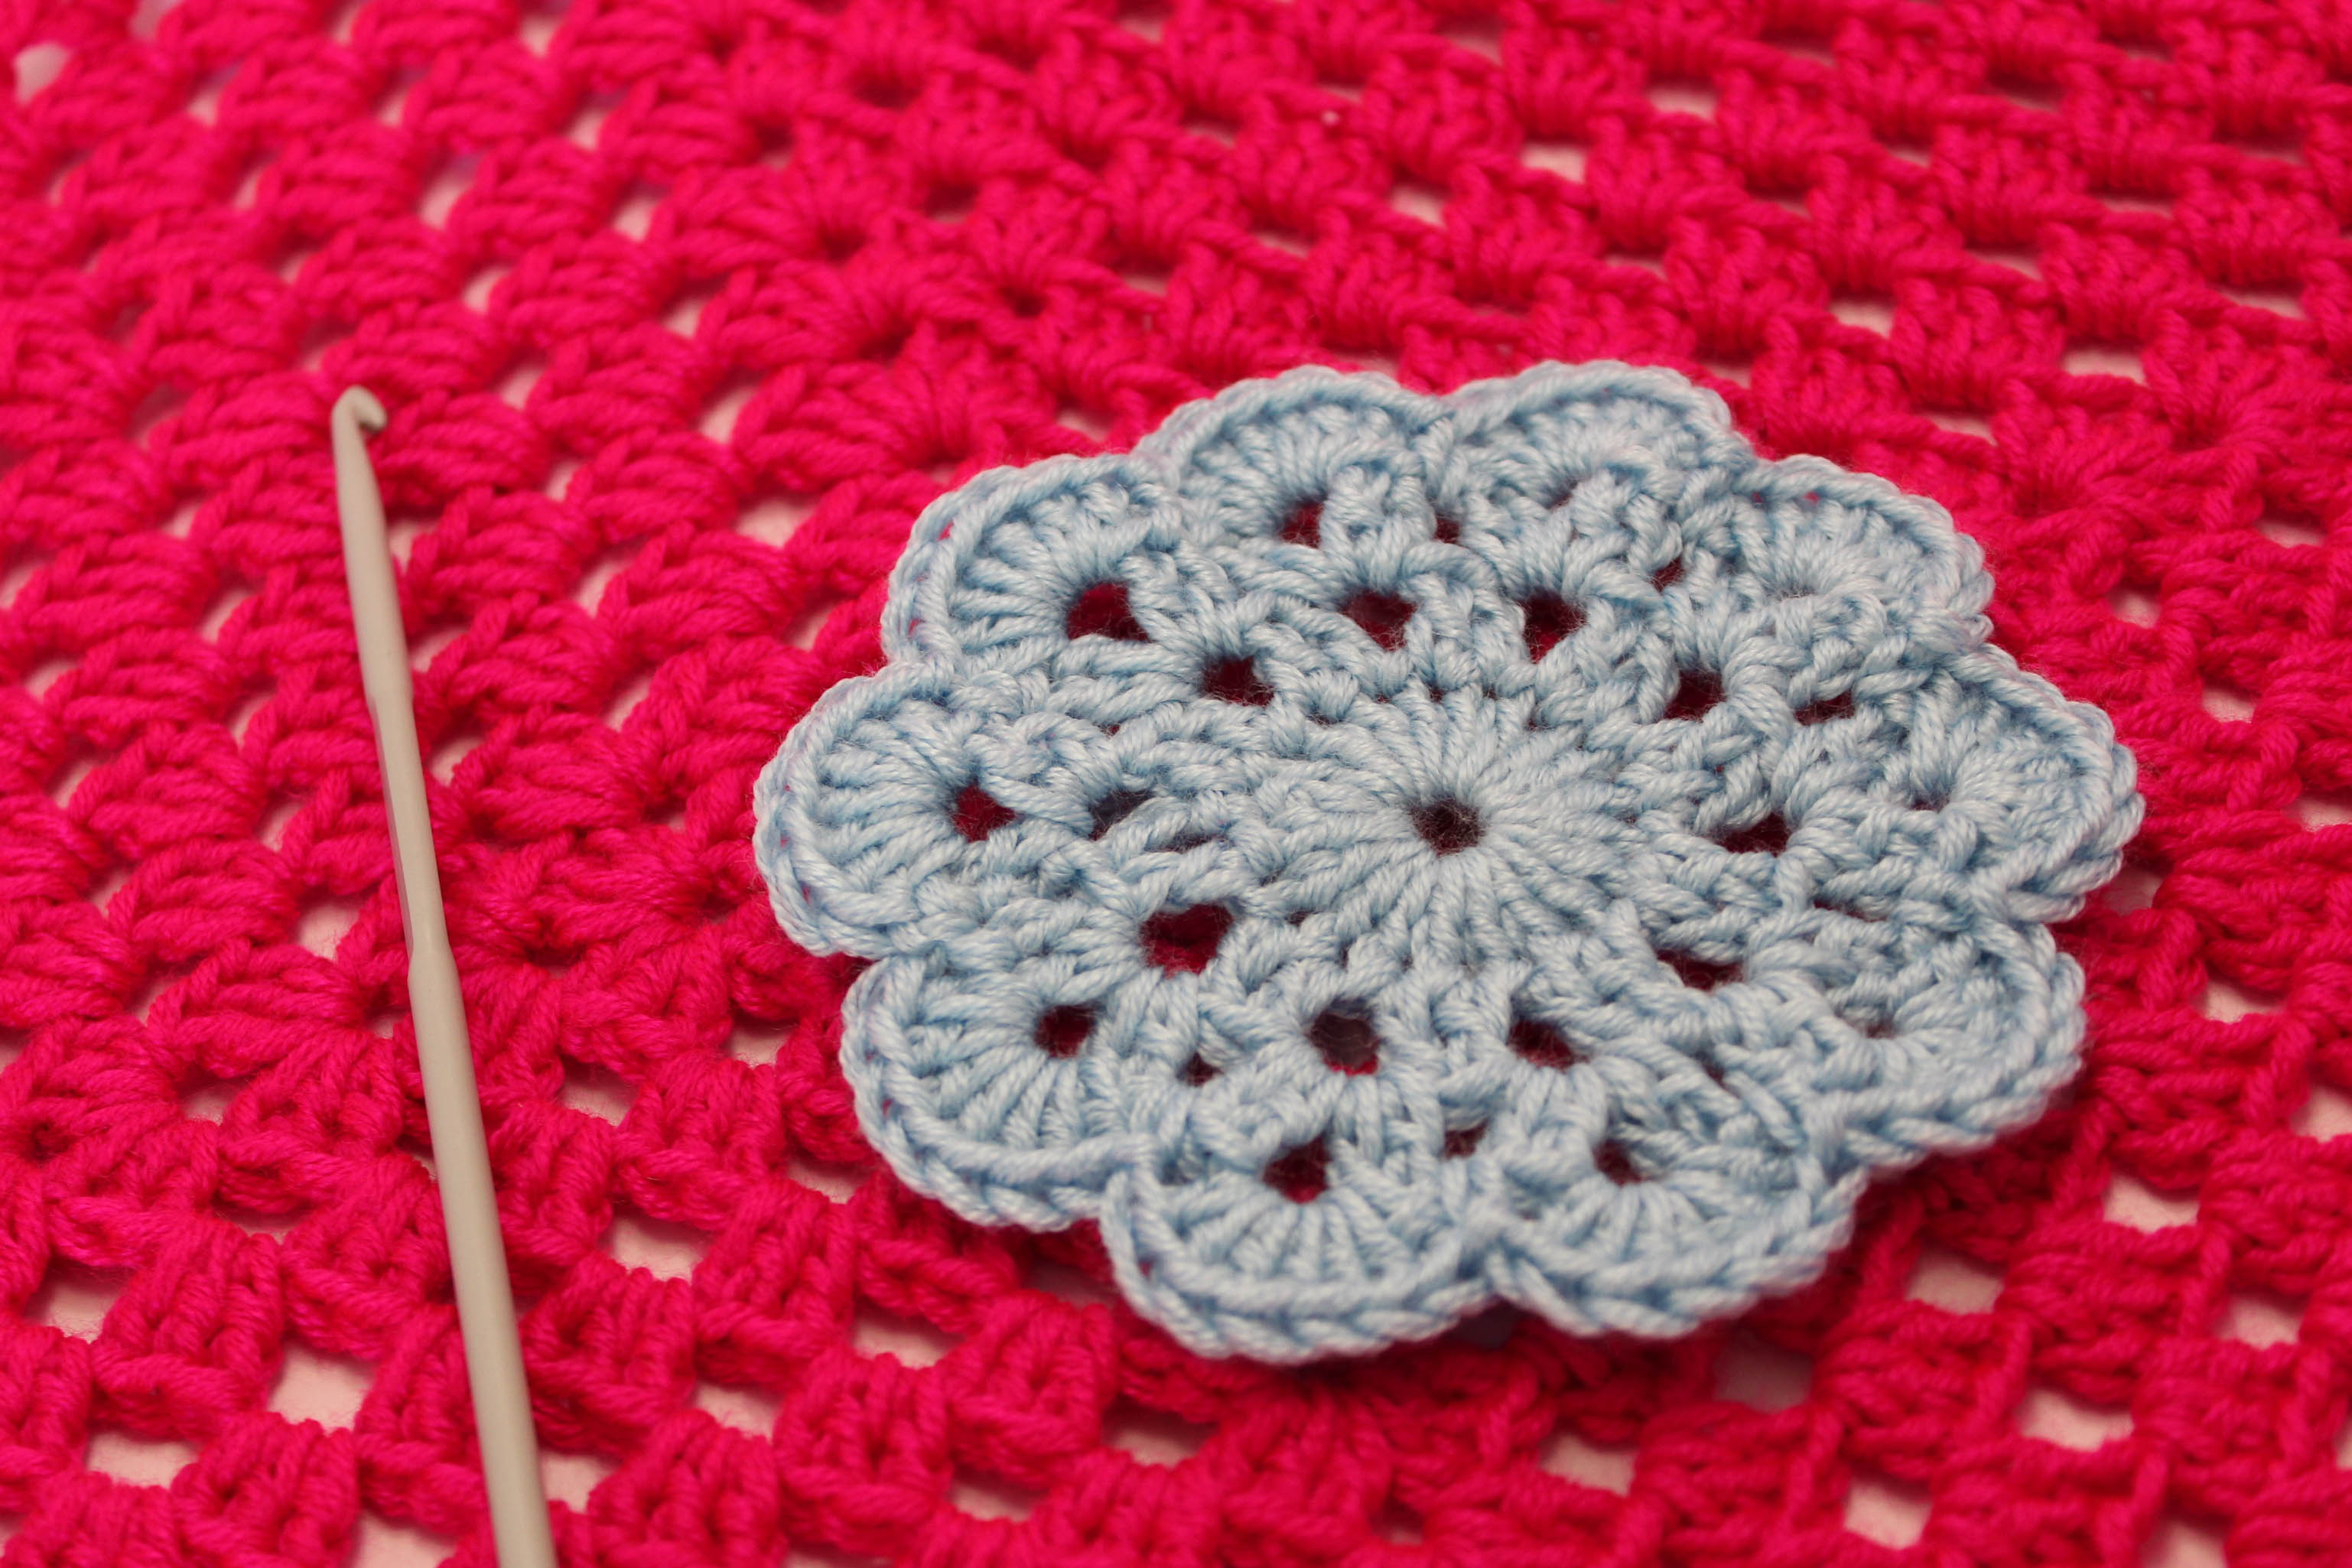 301 moved permanently - Apprendre a faire du crochet gratuit ...